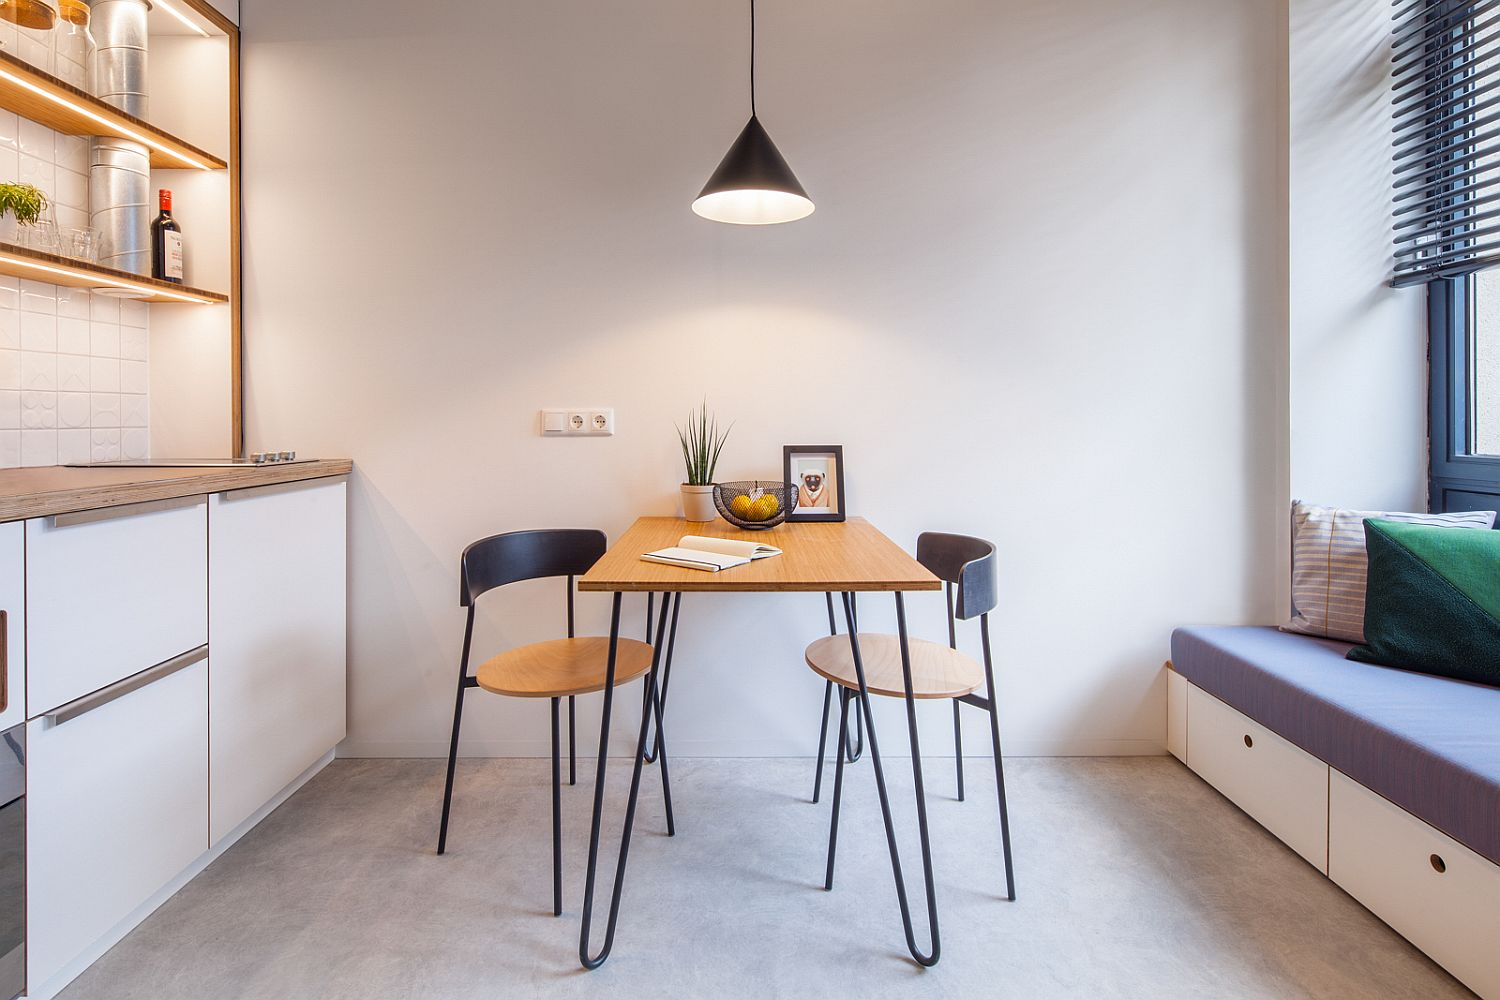 living room small apartment kitchen open floor plan 25 tiny dining rooms that save space and multitask in gallery student